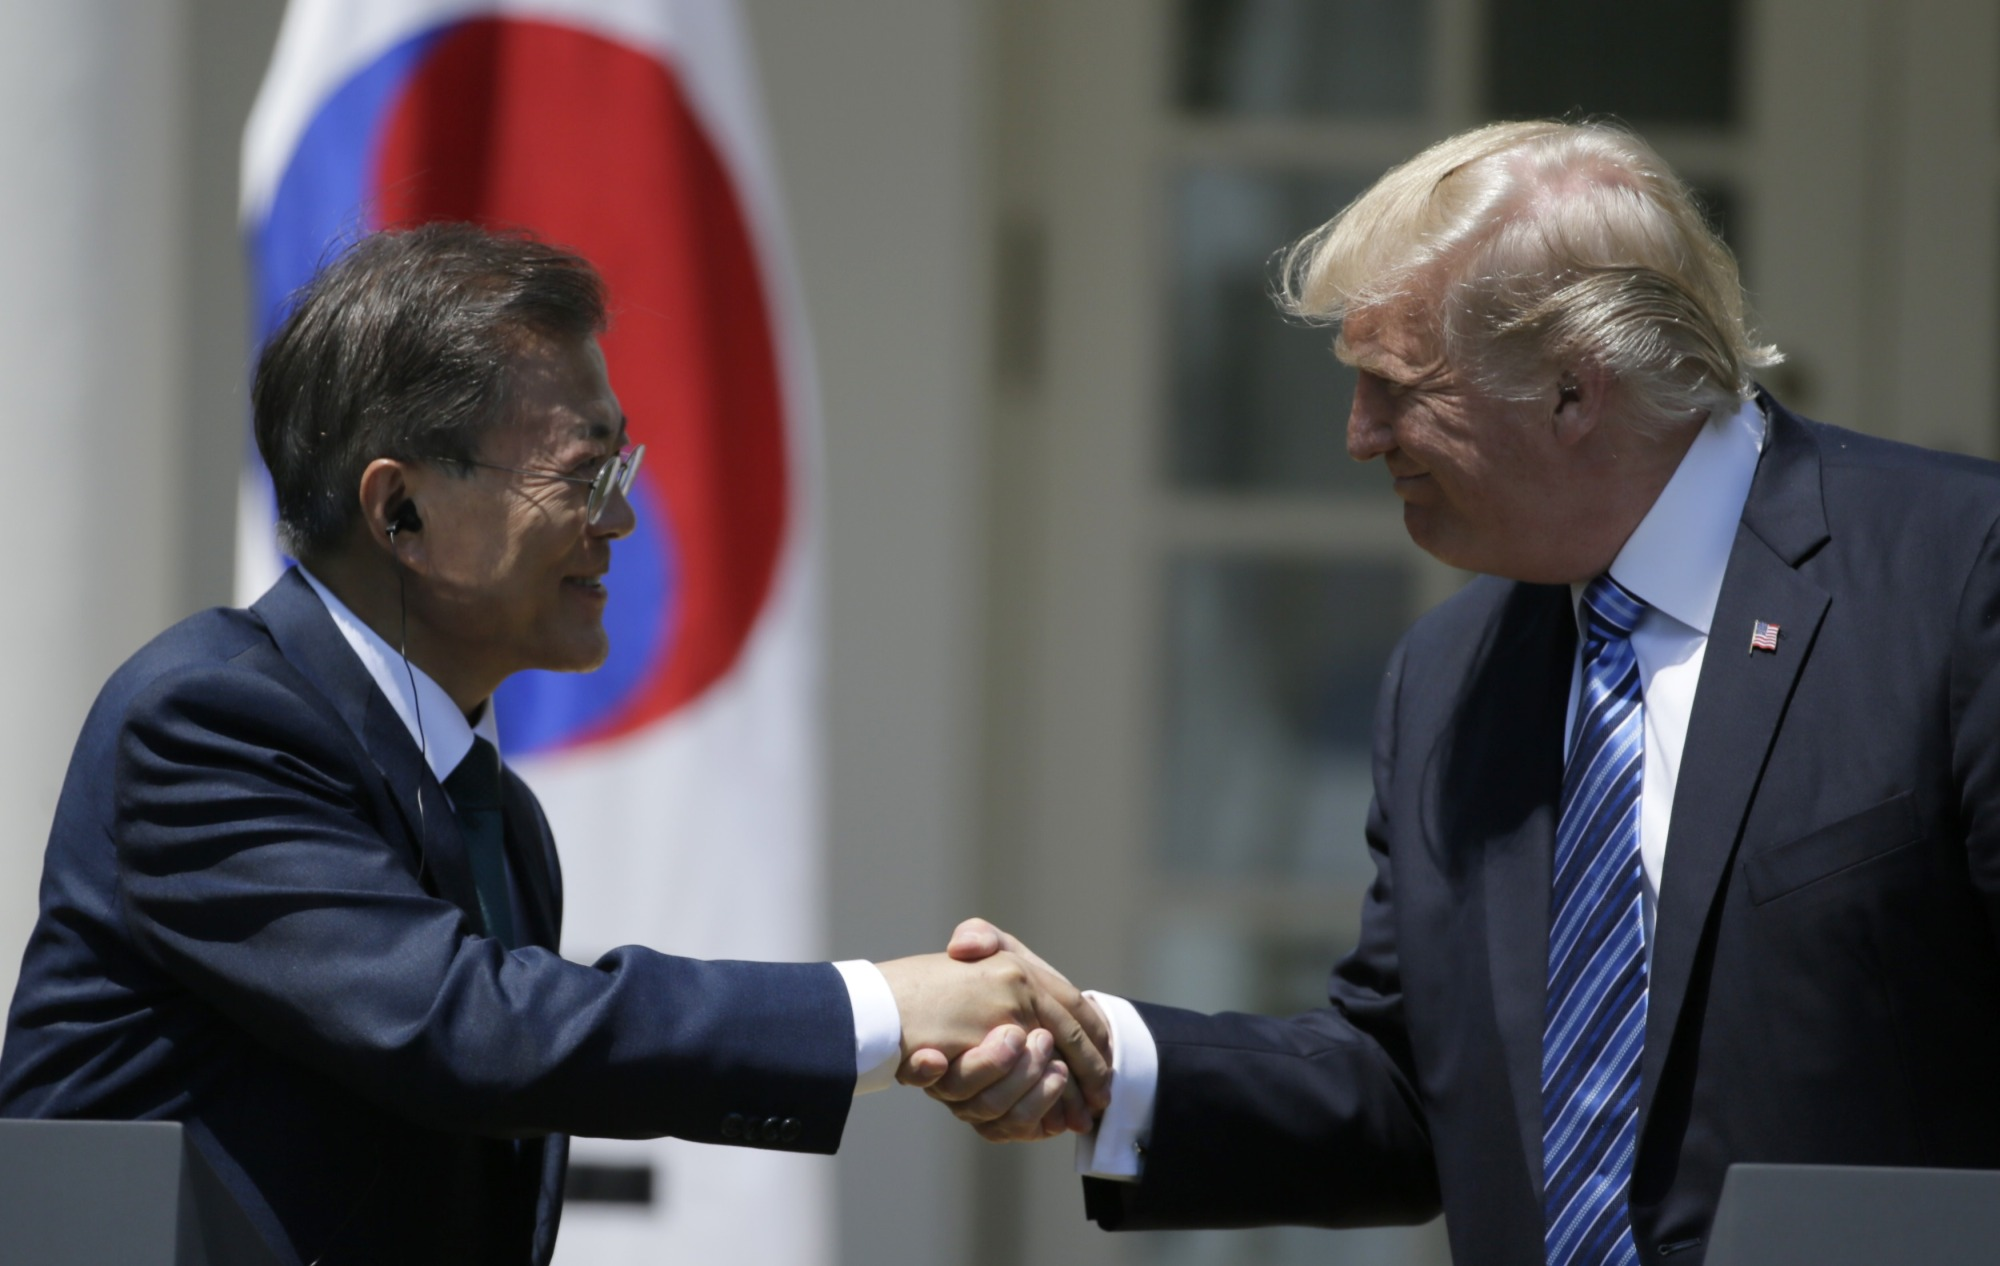 Trump considers leaving major S Korea trade deal